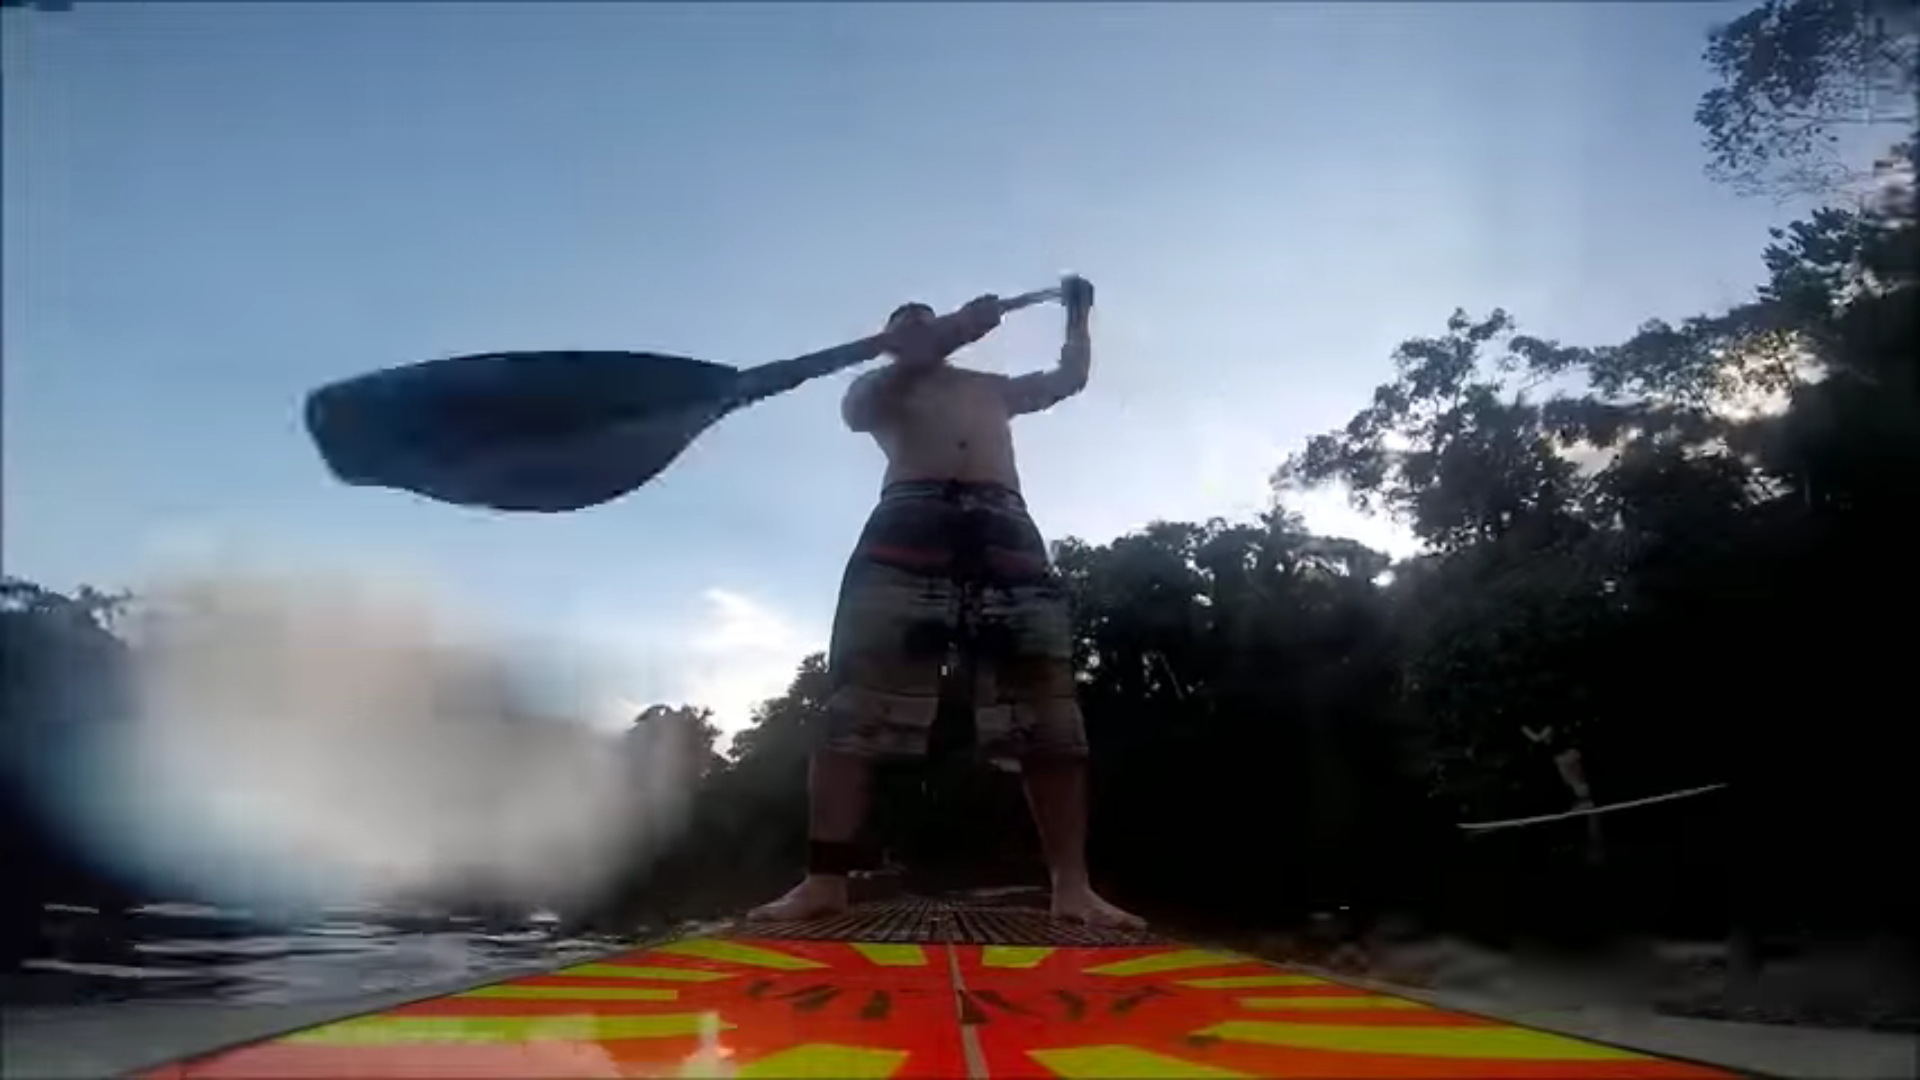 prancha-stand-up-paddle-sup